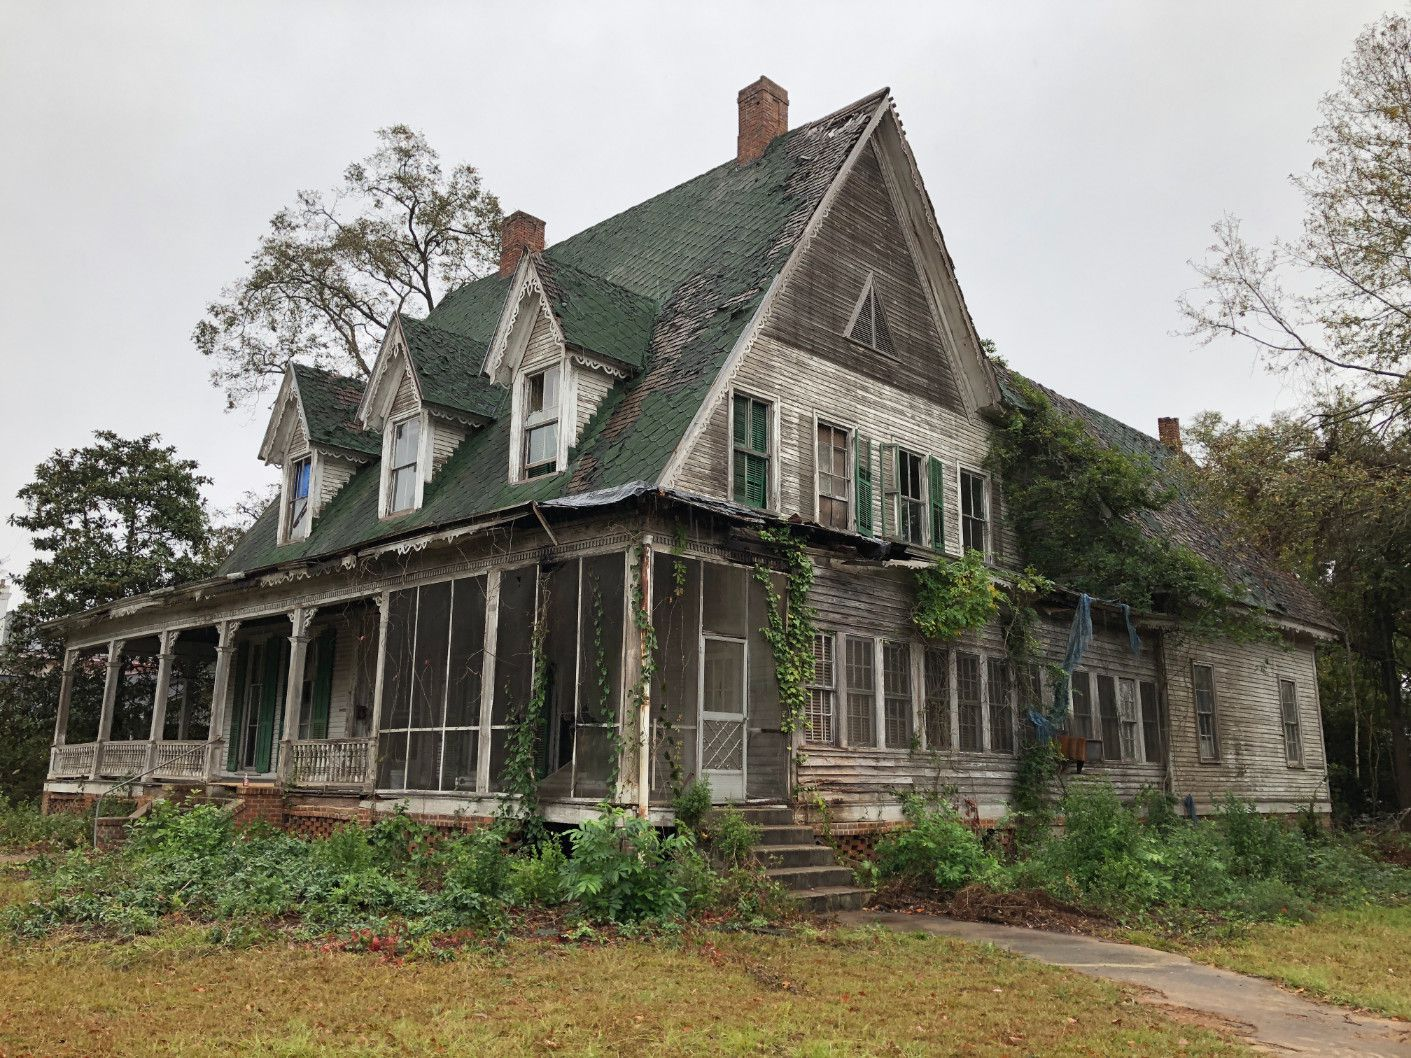 This 15,000 FixerUpper Needs a Knight in Shining